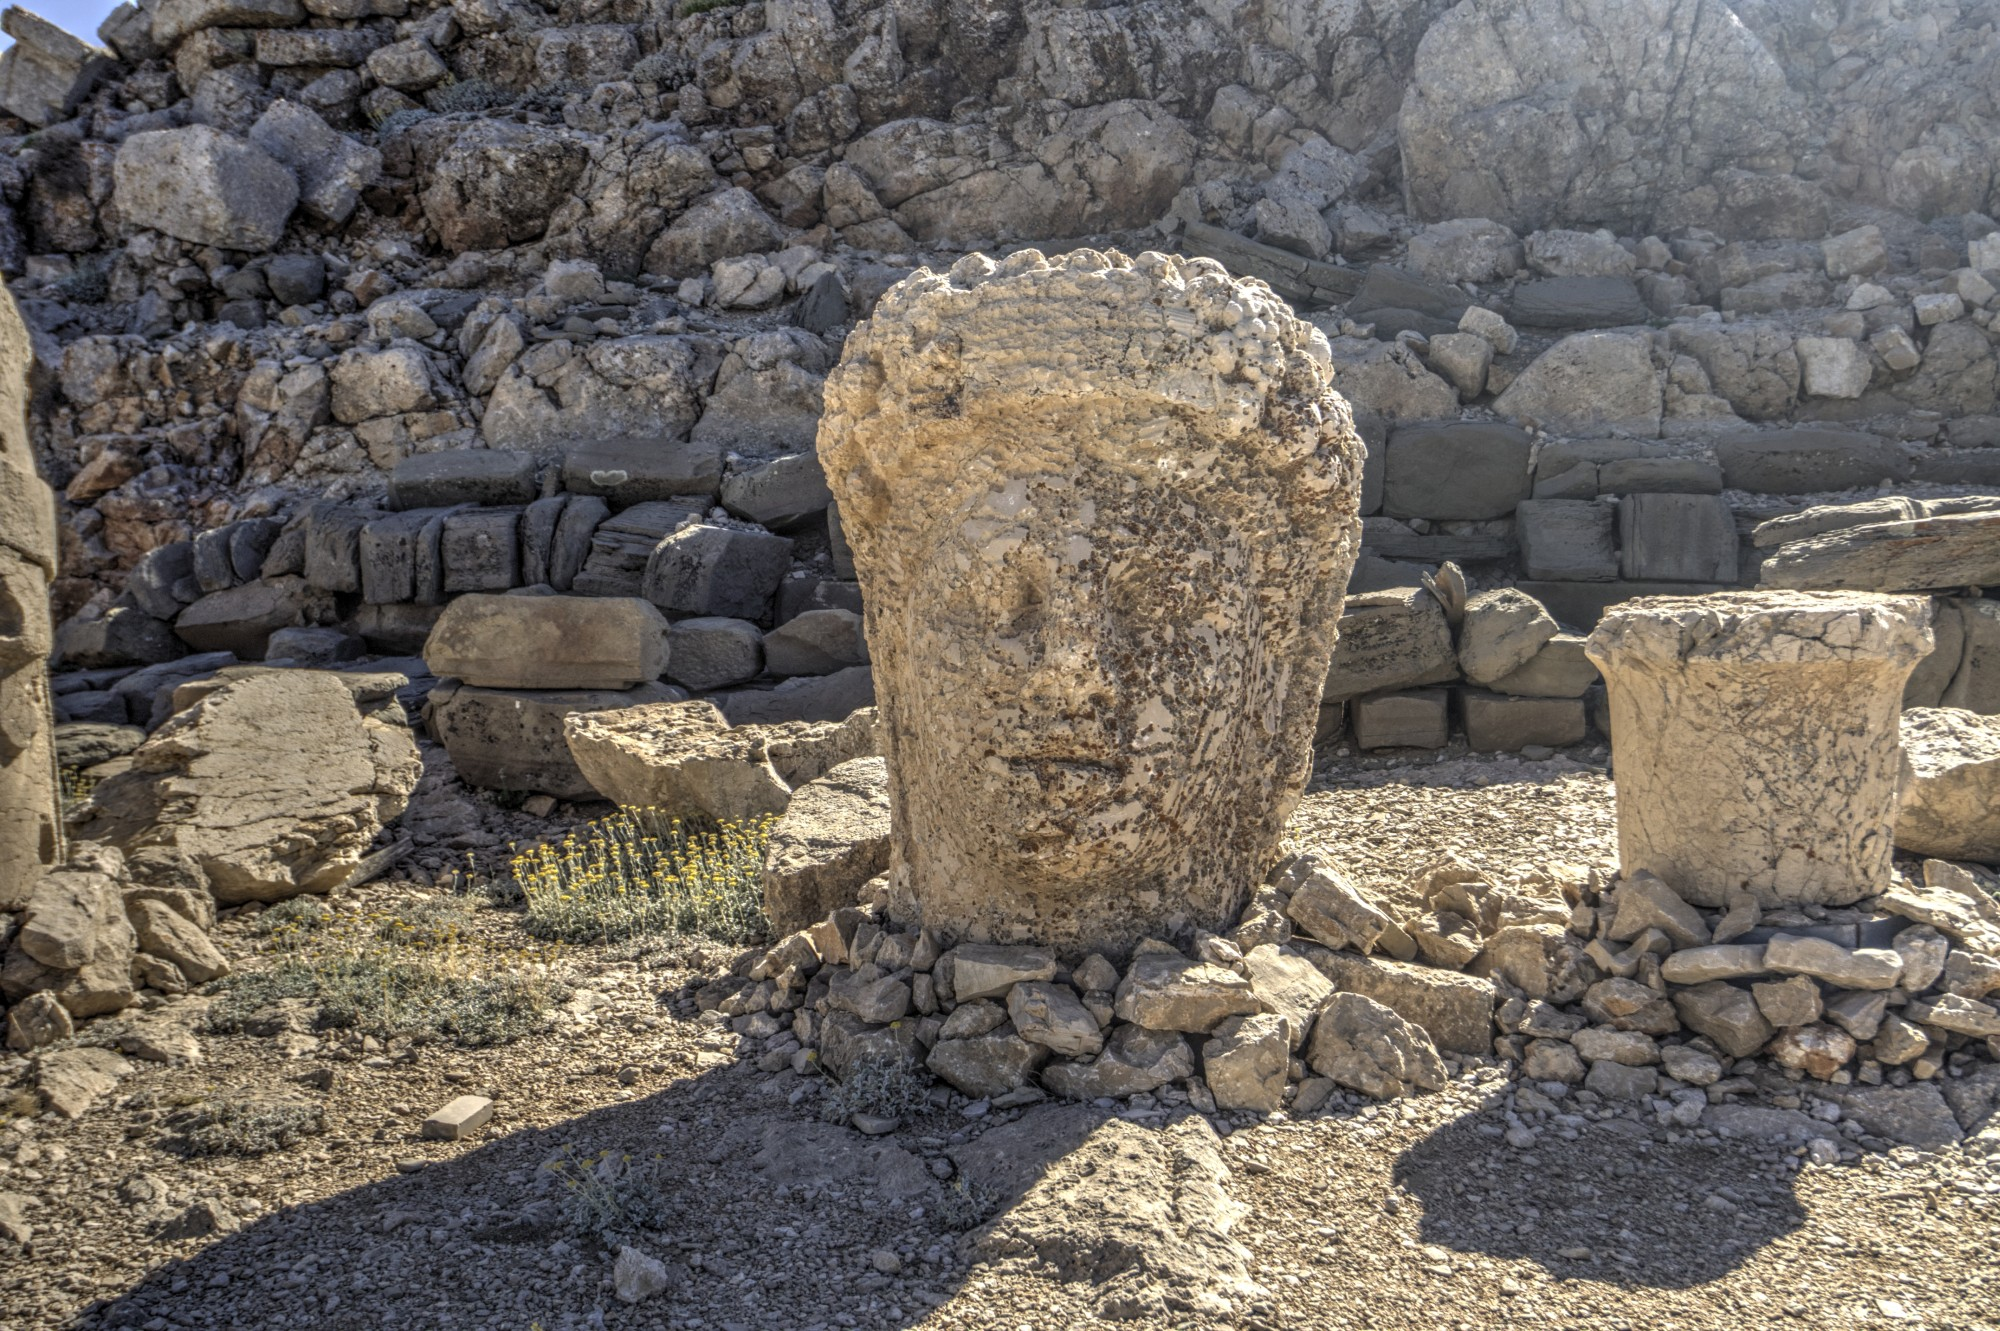 East Terrace on Mount Nemrut, the head of the goddess of Commagene